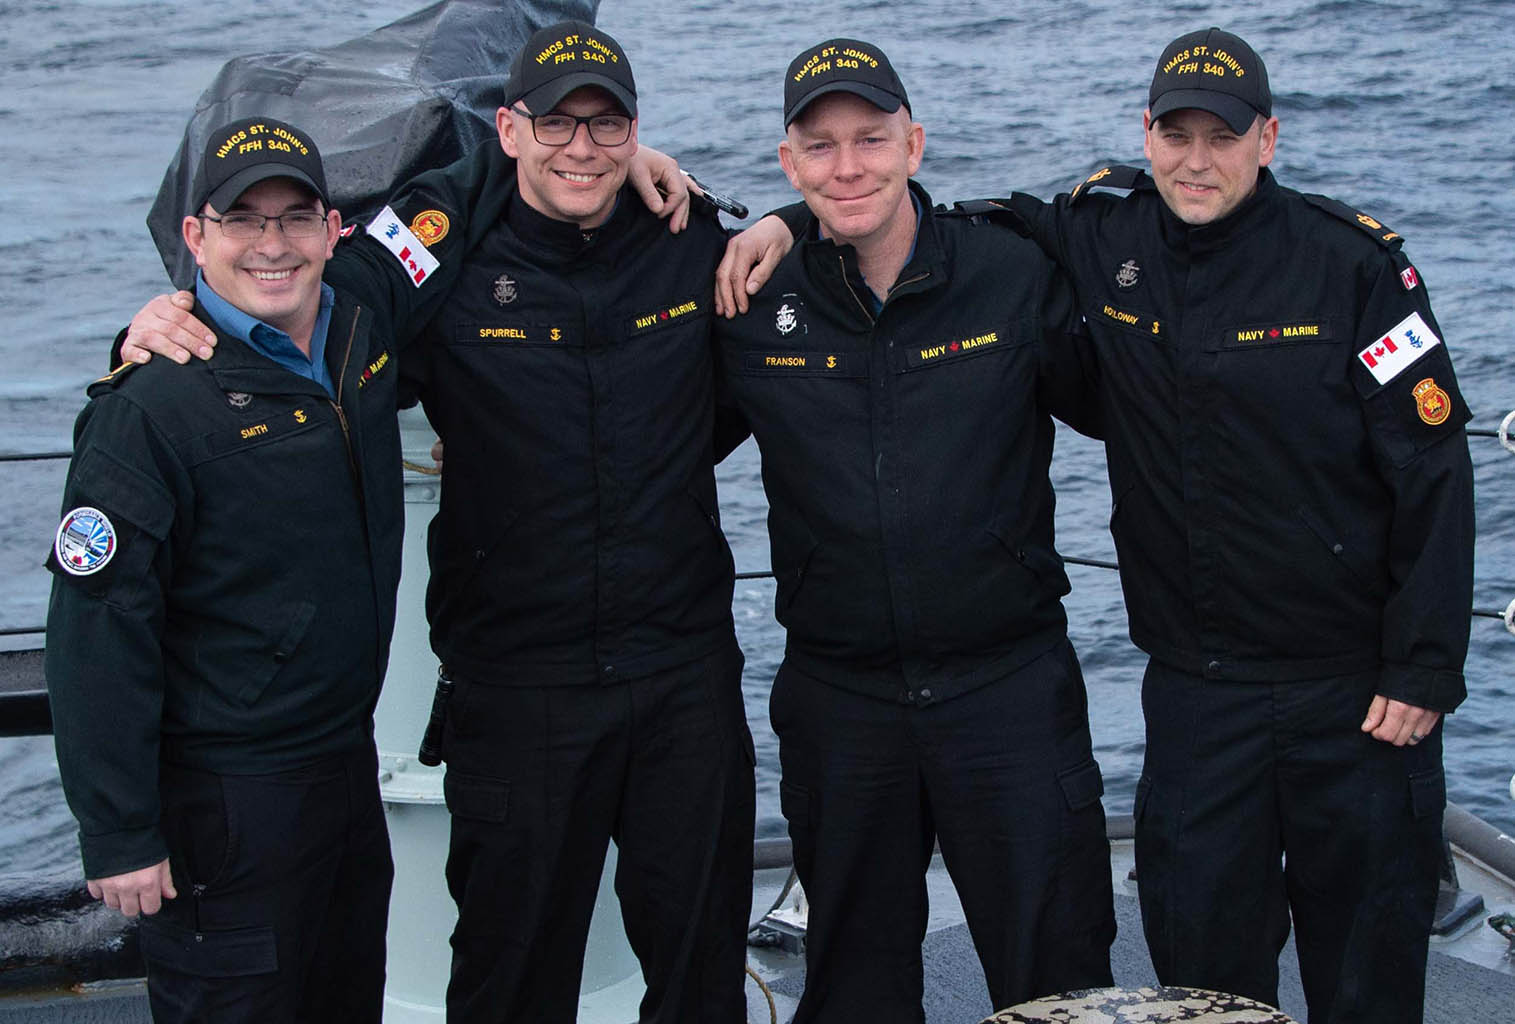 Four HMCS St. John's Petty Officers